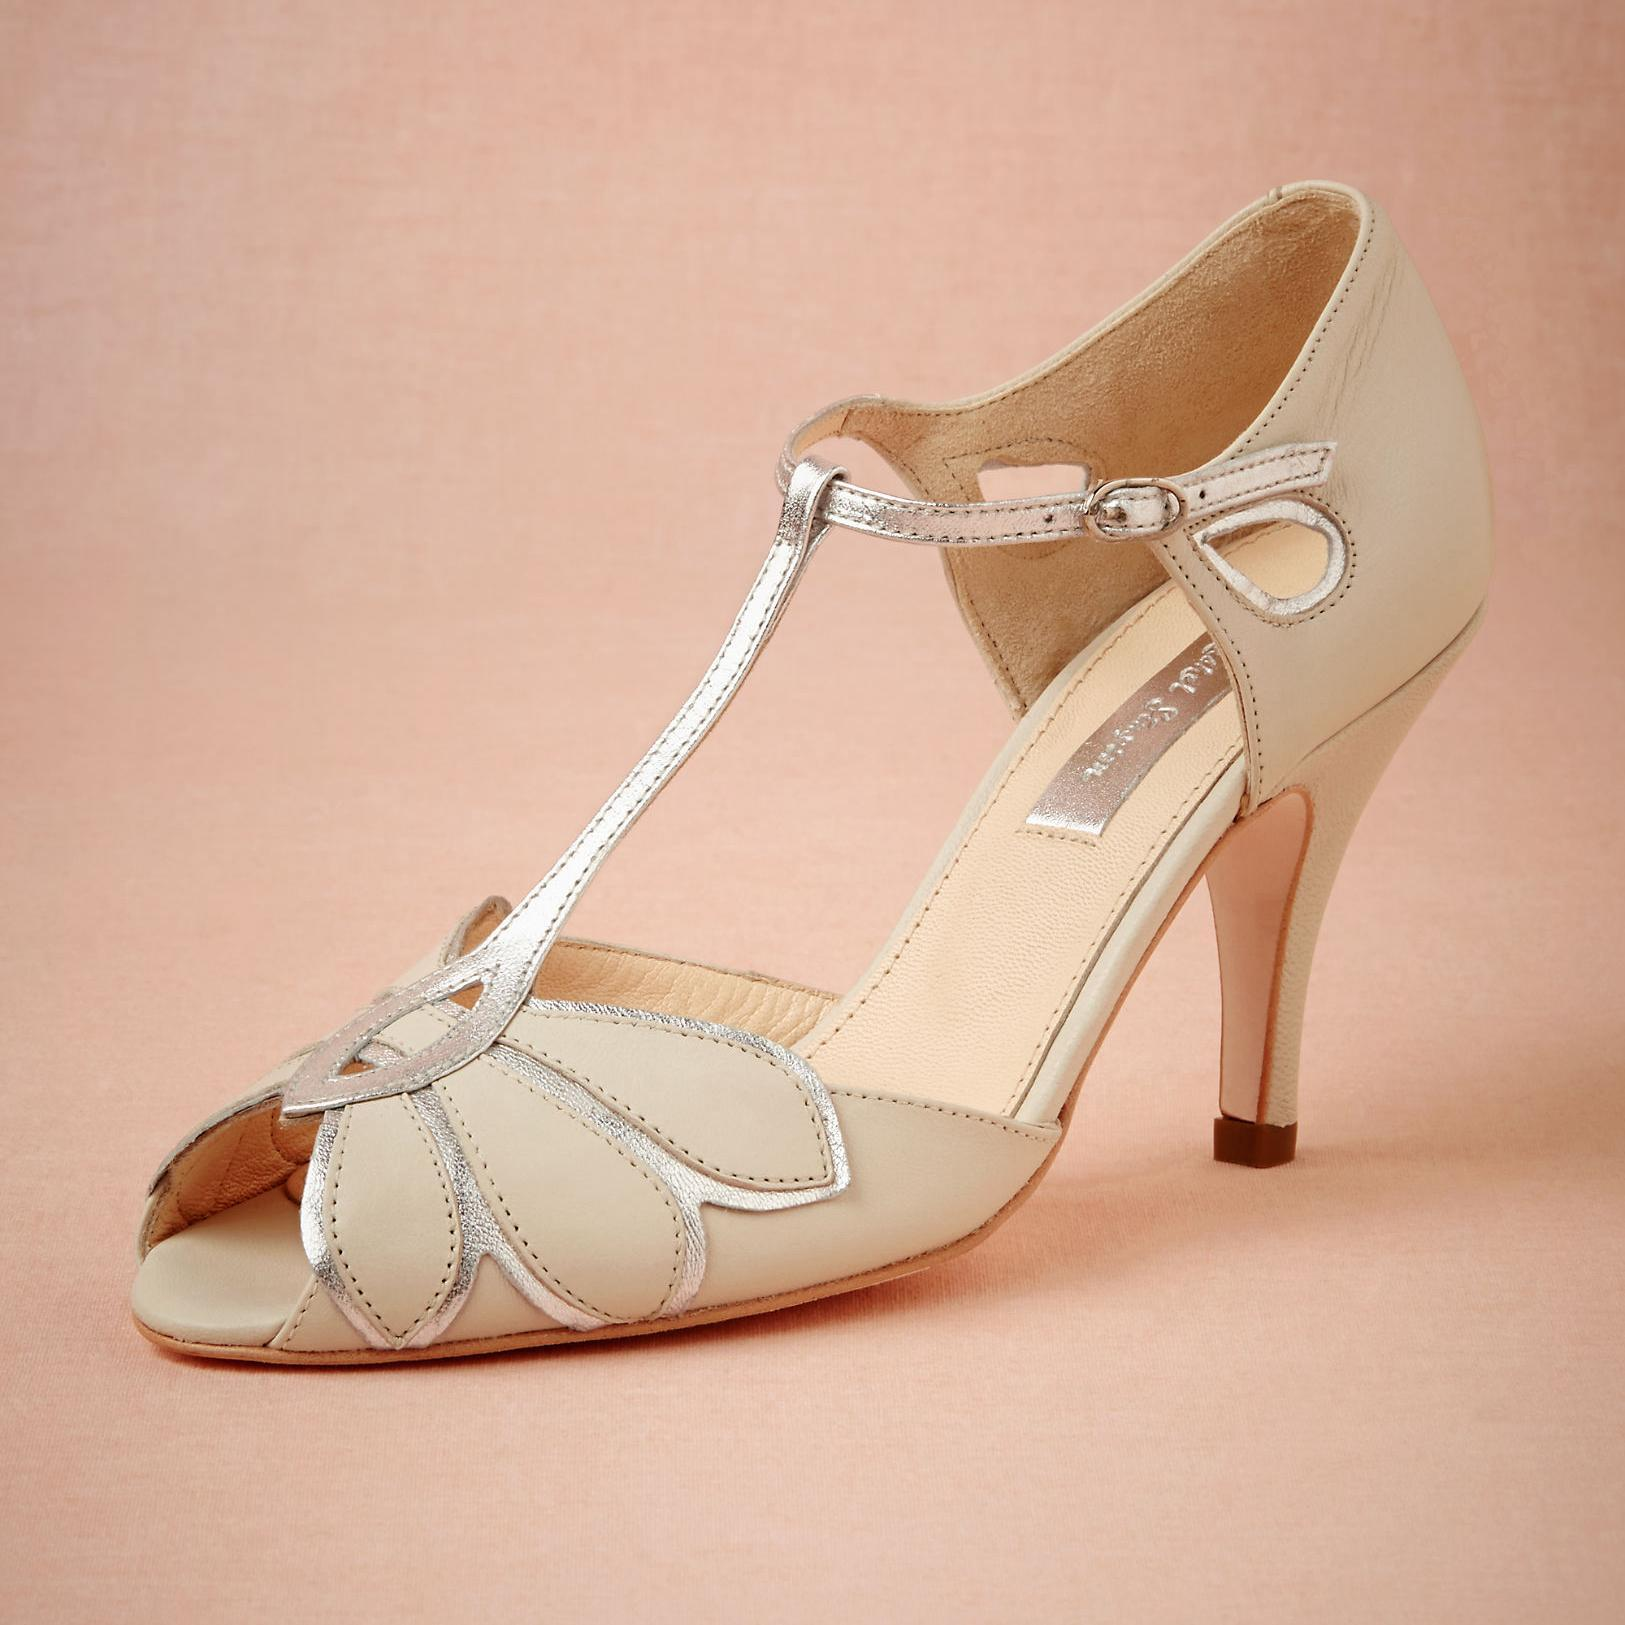 026971ed76a Vintage Ivory Wedding Shoes Wedding Pumps Mimosa T Straps Buckle Closure  Leather Party Dance 3.5 Heels Women Sandals Short Wedding Boots Wedding  Shoes For ...